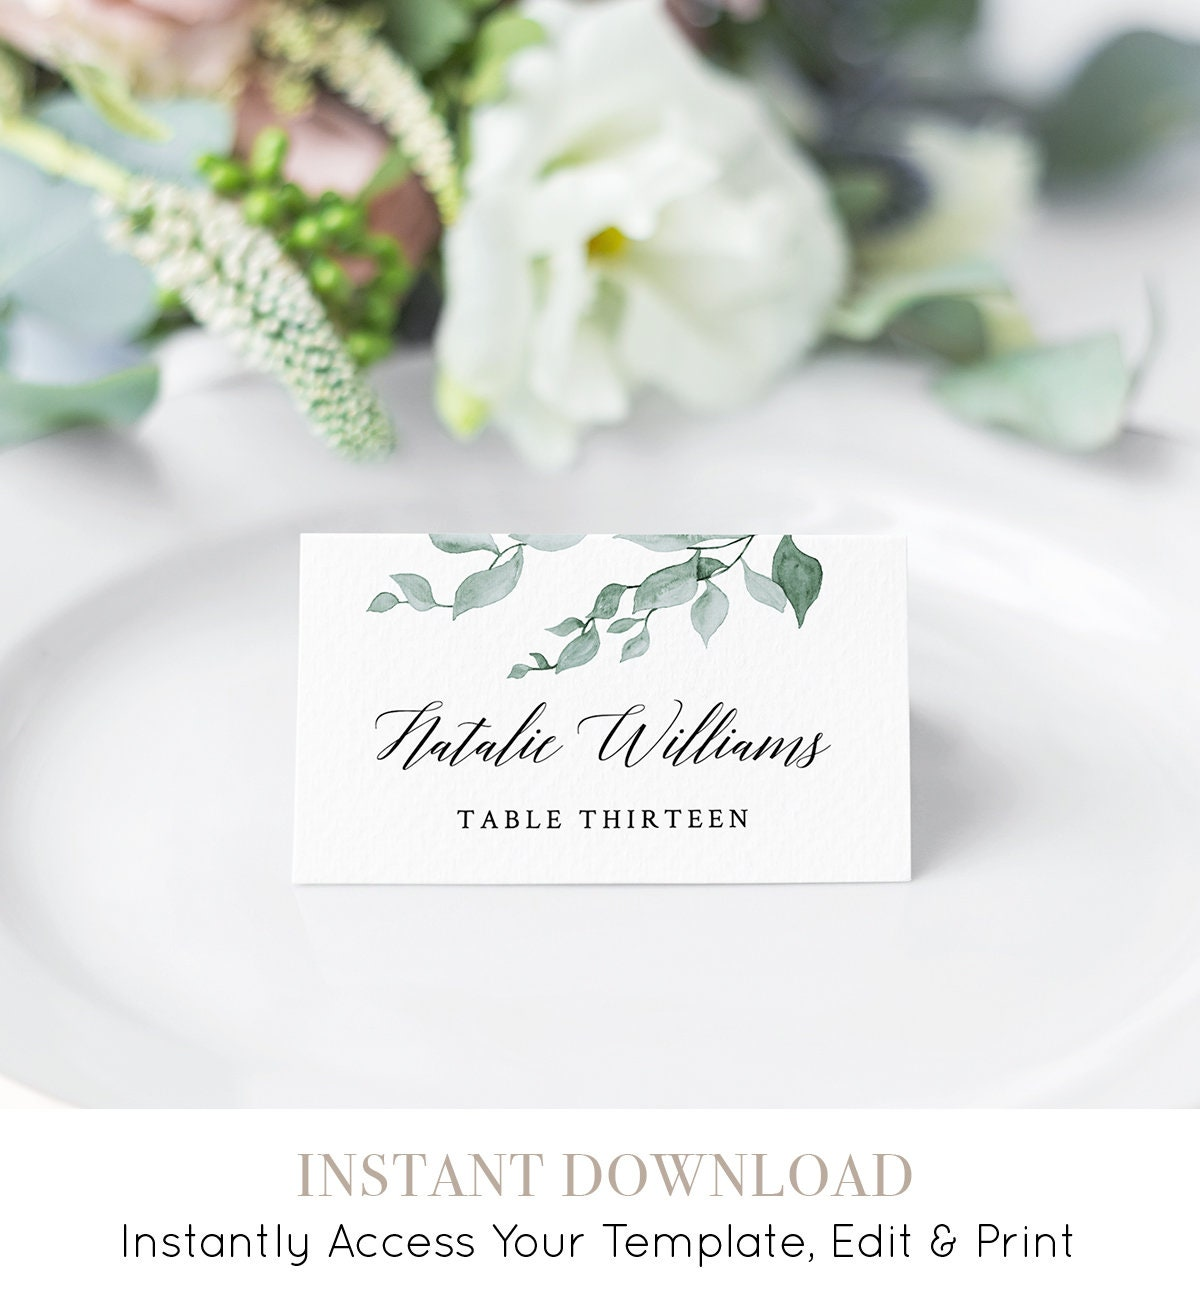 photograph regarding Printable Wedding Place Cards known as Printable Marriage ceremony Location Card, Escort Card Template, Standing Card, Watercolor Greenery Seating Card, Immediate Obtain, Entirely Editable #019-105Laptop or computer